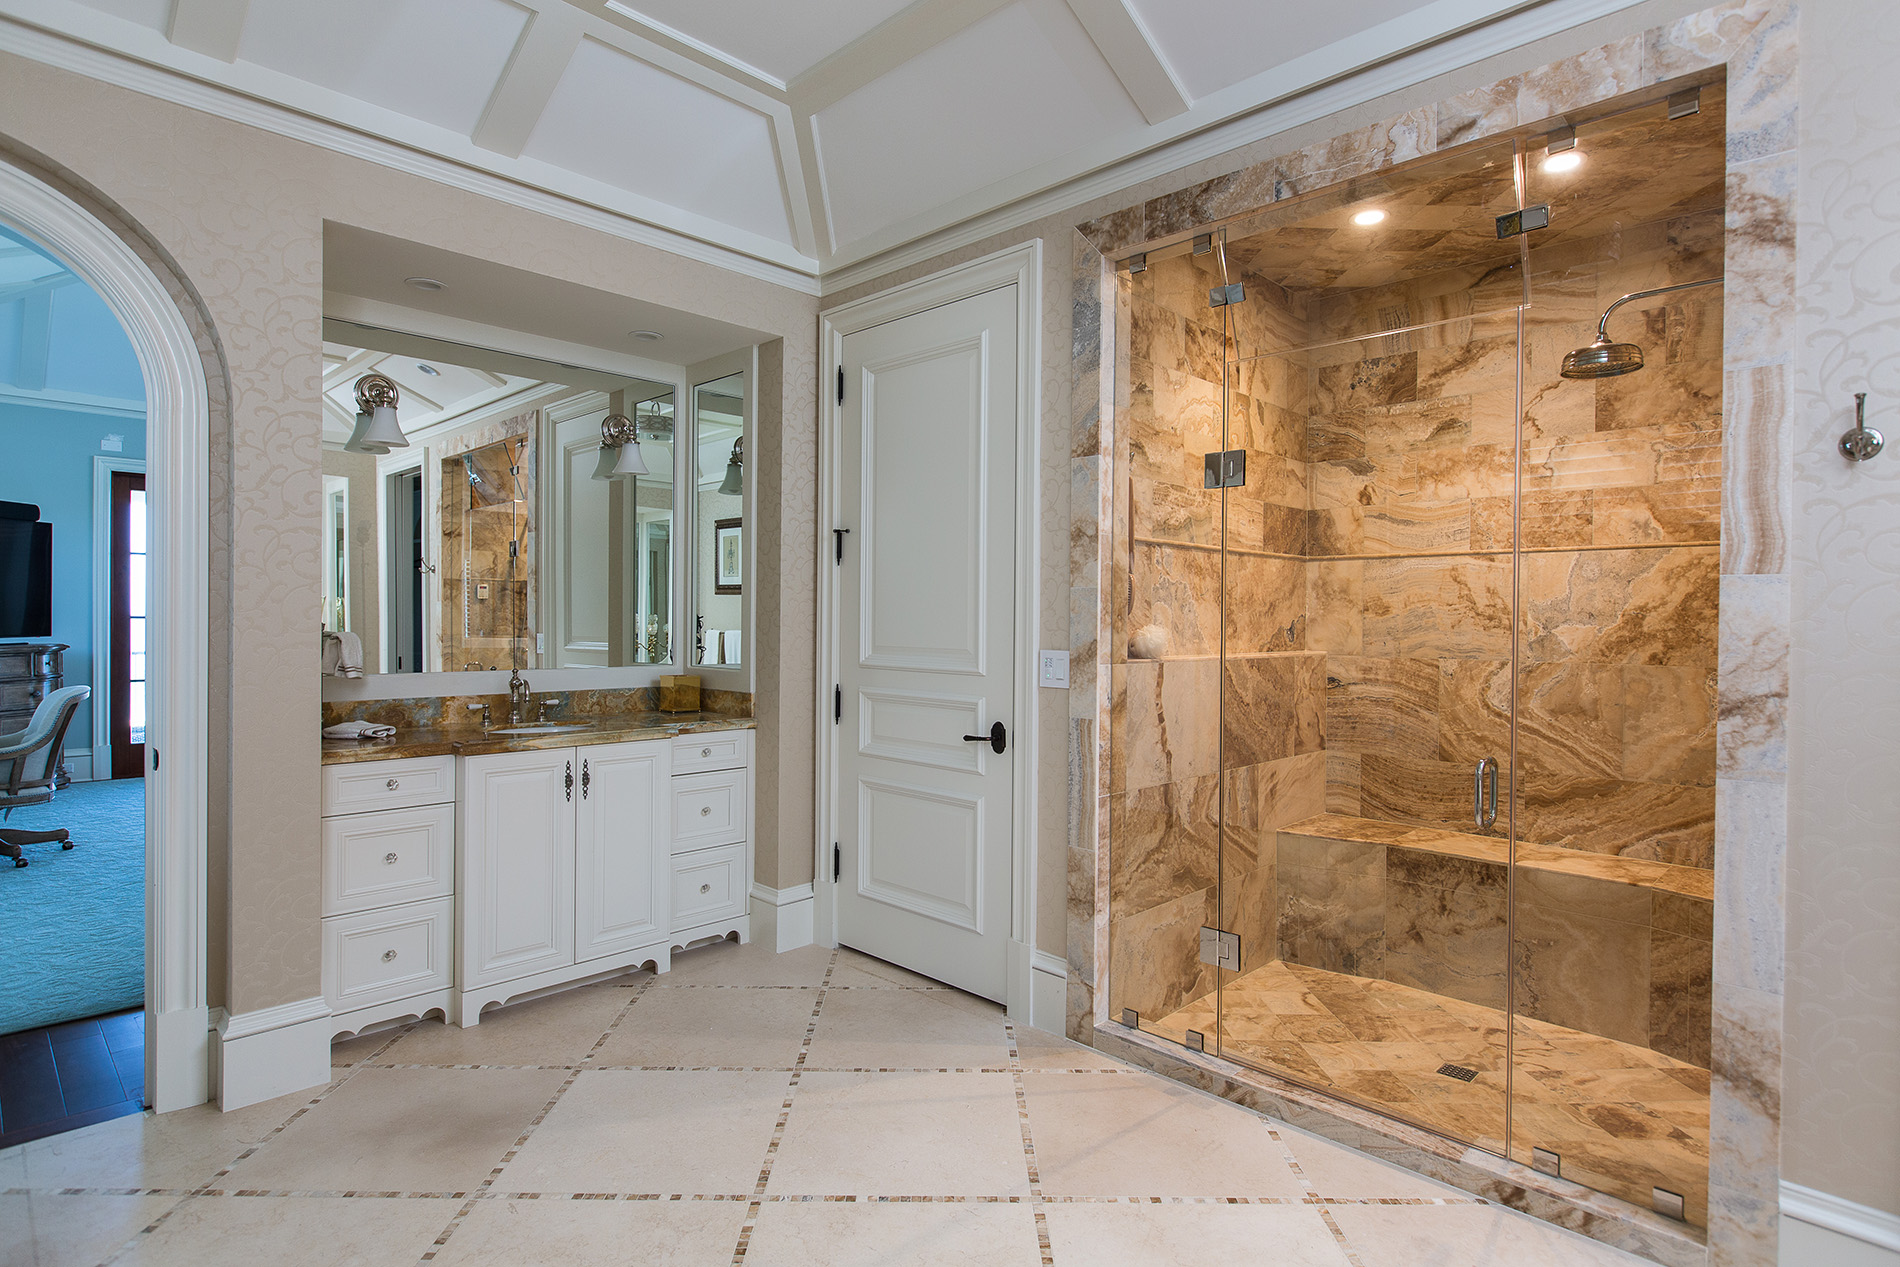 Shower Doors Hbs Southern Floridas Impact Resistant Window And